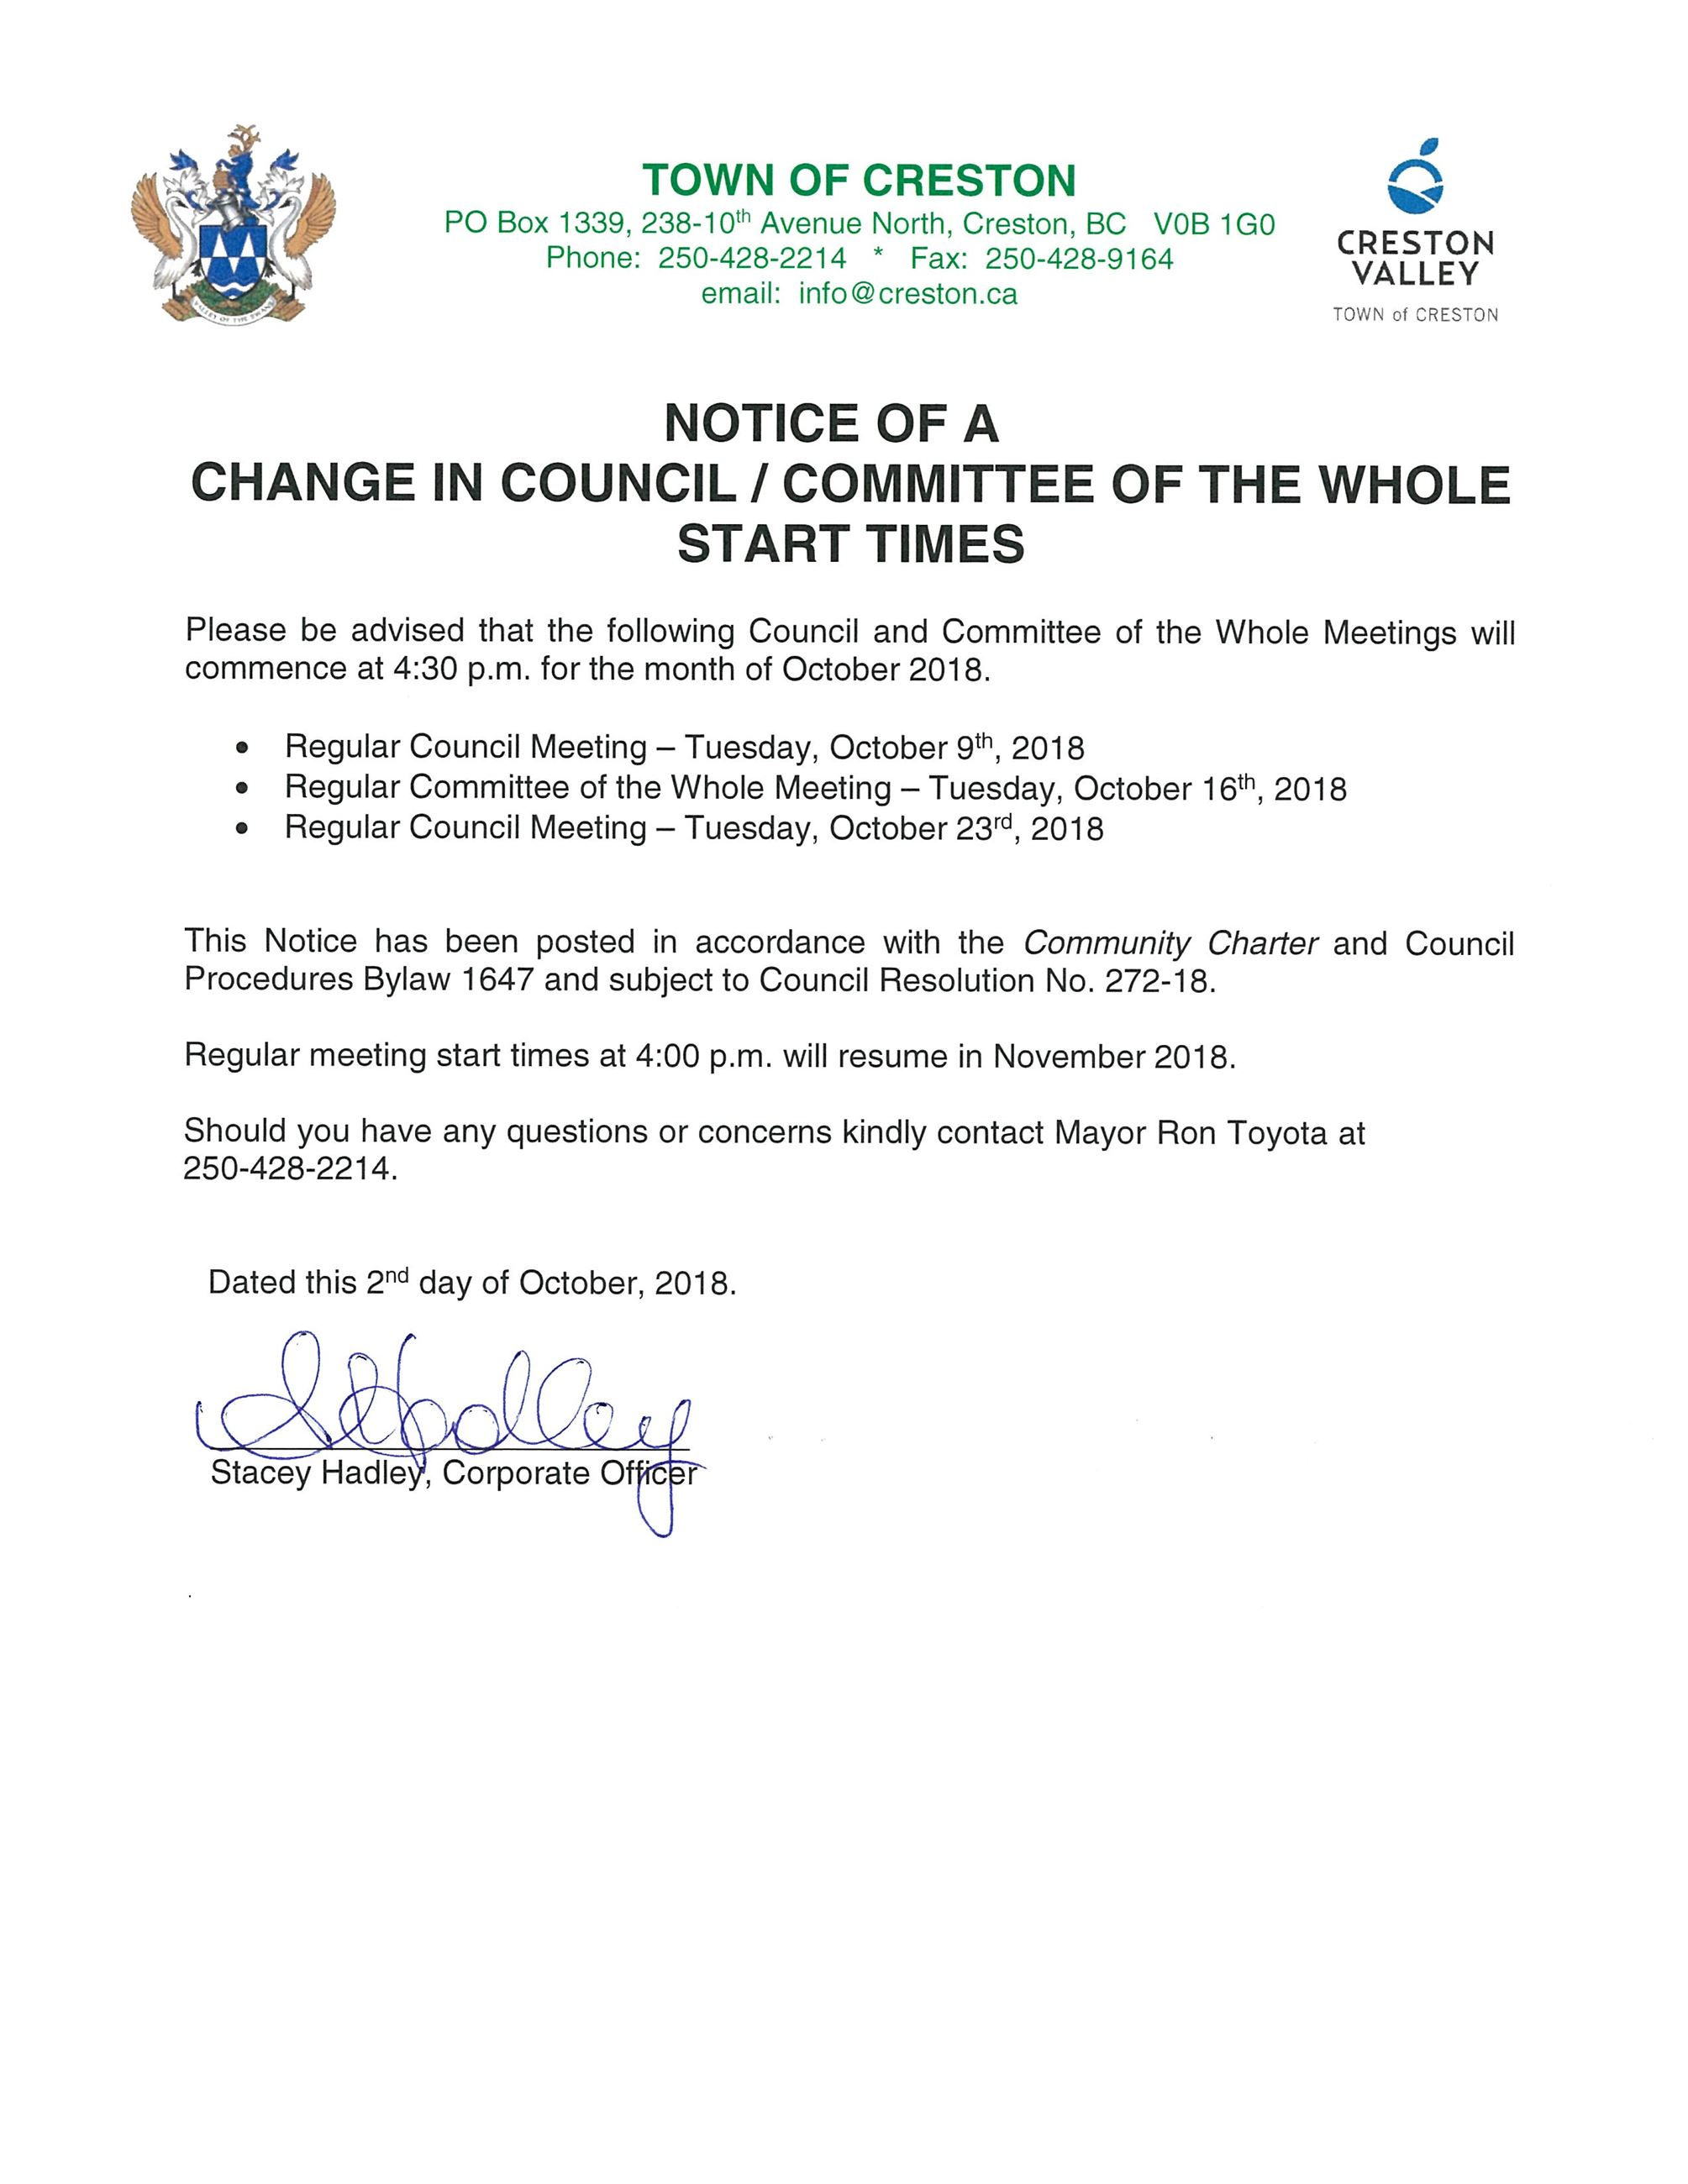 Notice - Meeting Start Time